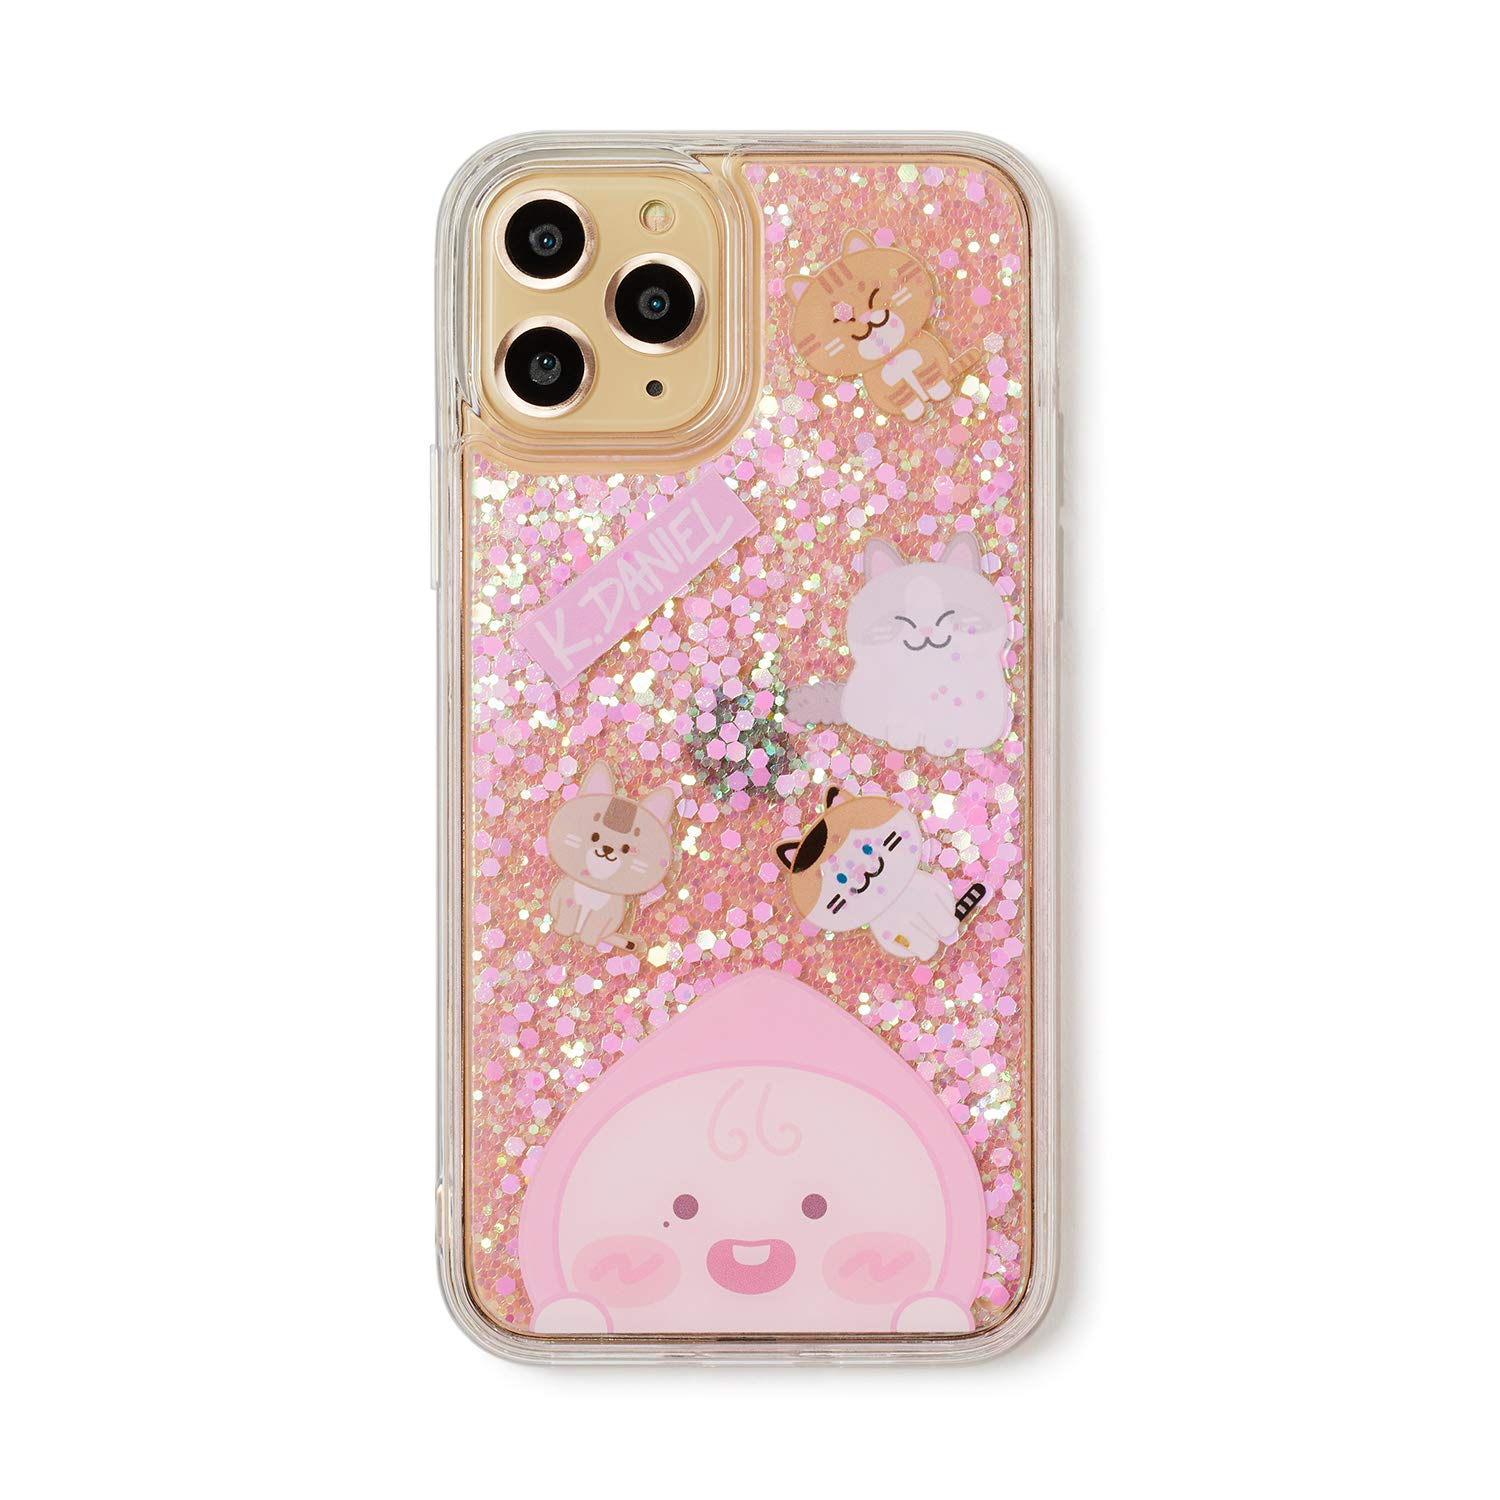 KAKAO FRIENDS Official- Apeach KangDaniel Edition Glitter Cell Phone Case, Compatible with iPhone, Galaxy (iPhone 11 Pro)